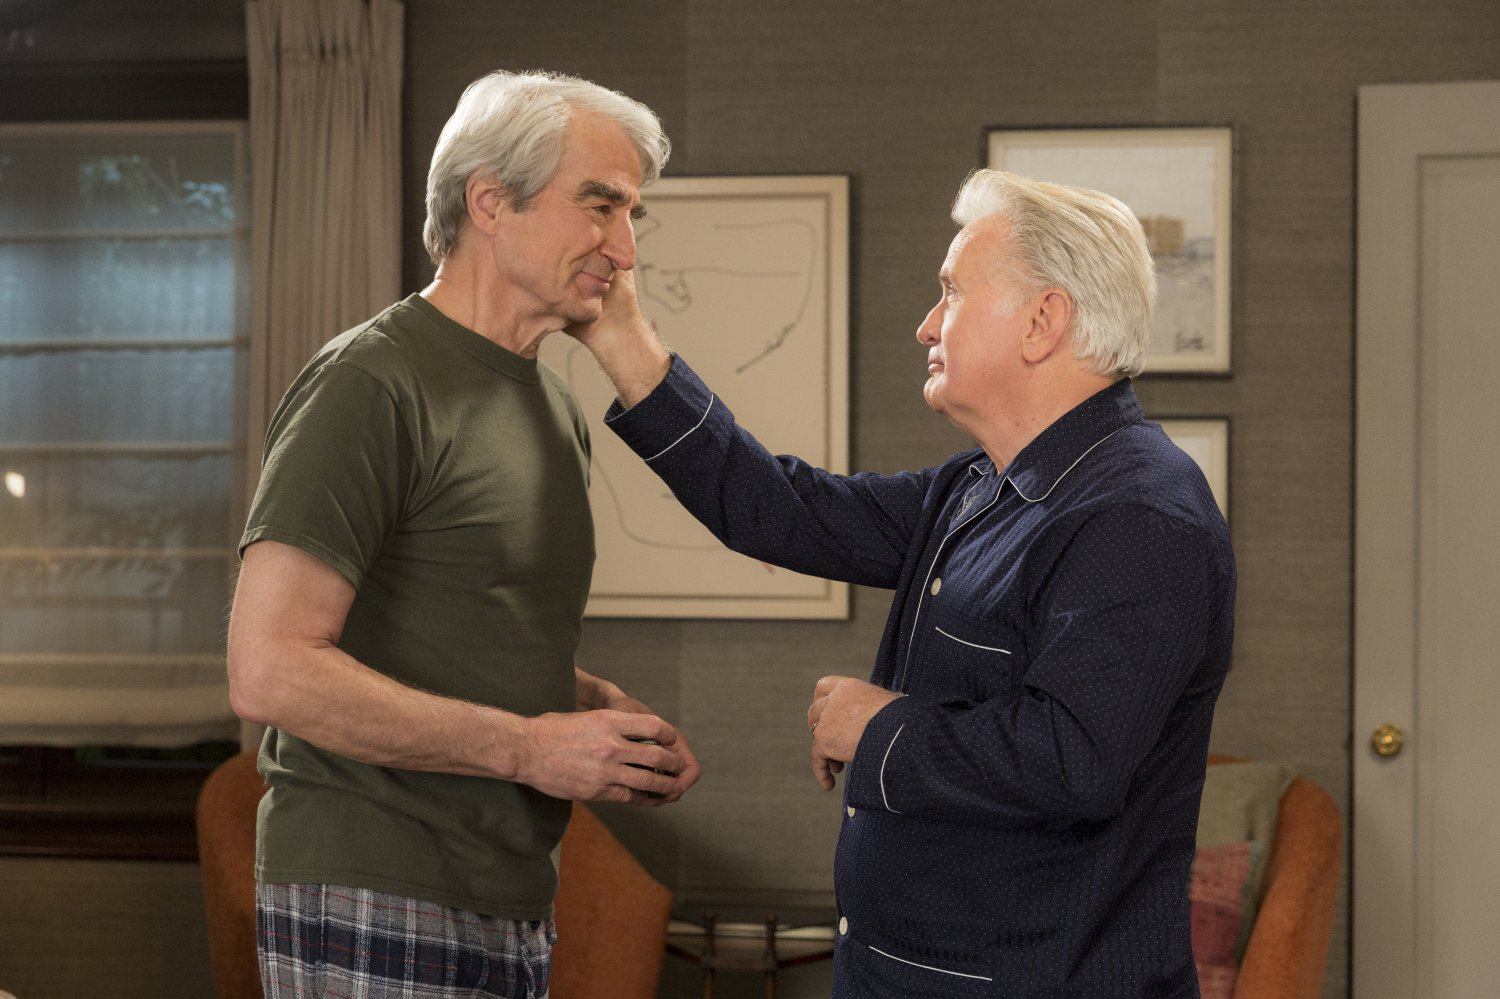 Still image of actors Martin Sheen and Sam Waterston from the TV show Grace and Frankie